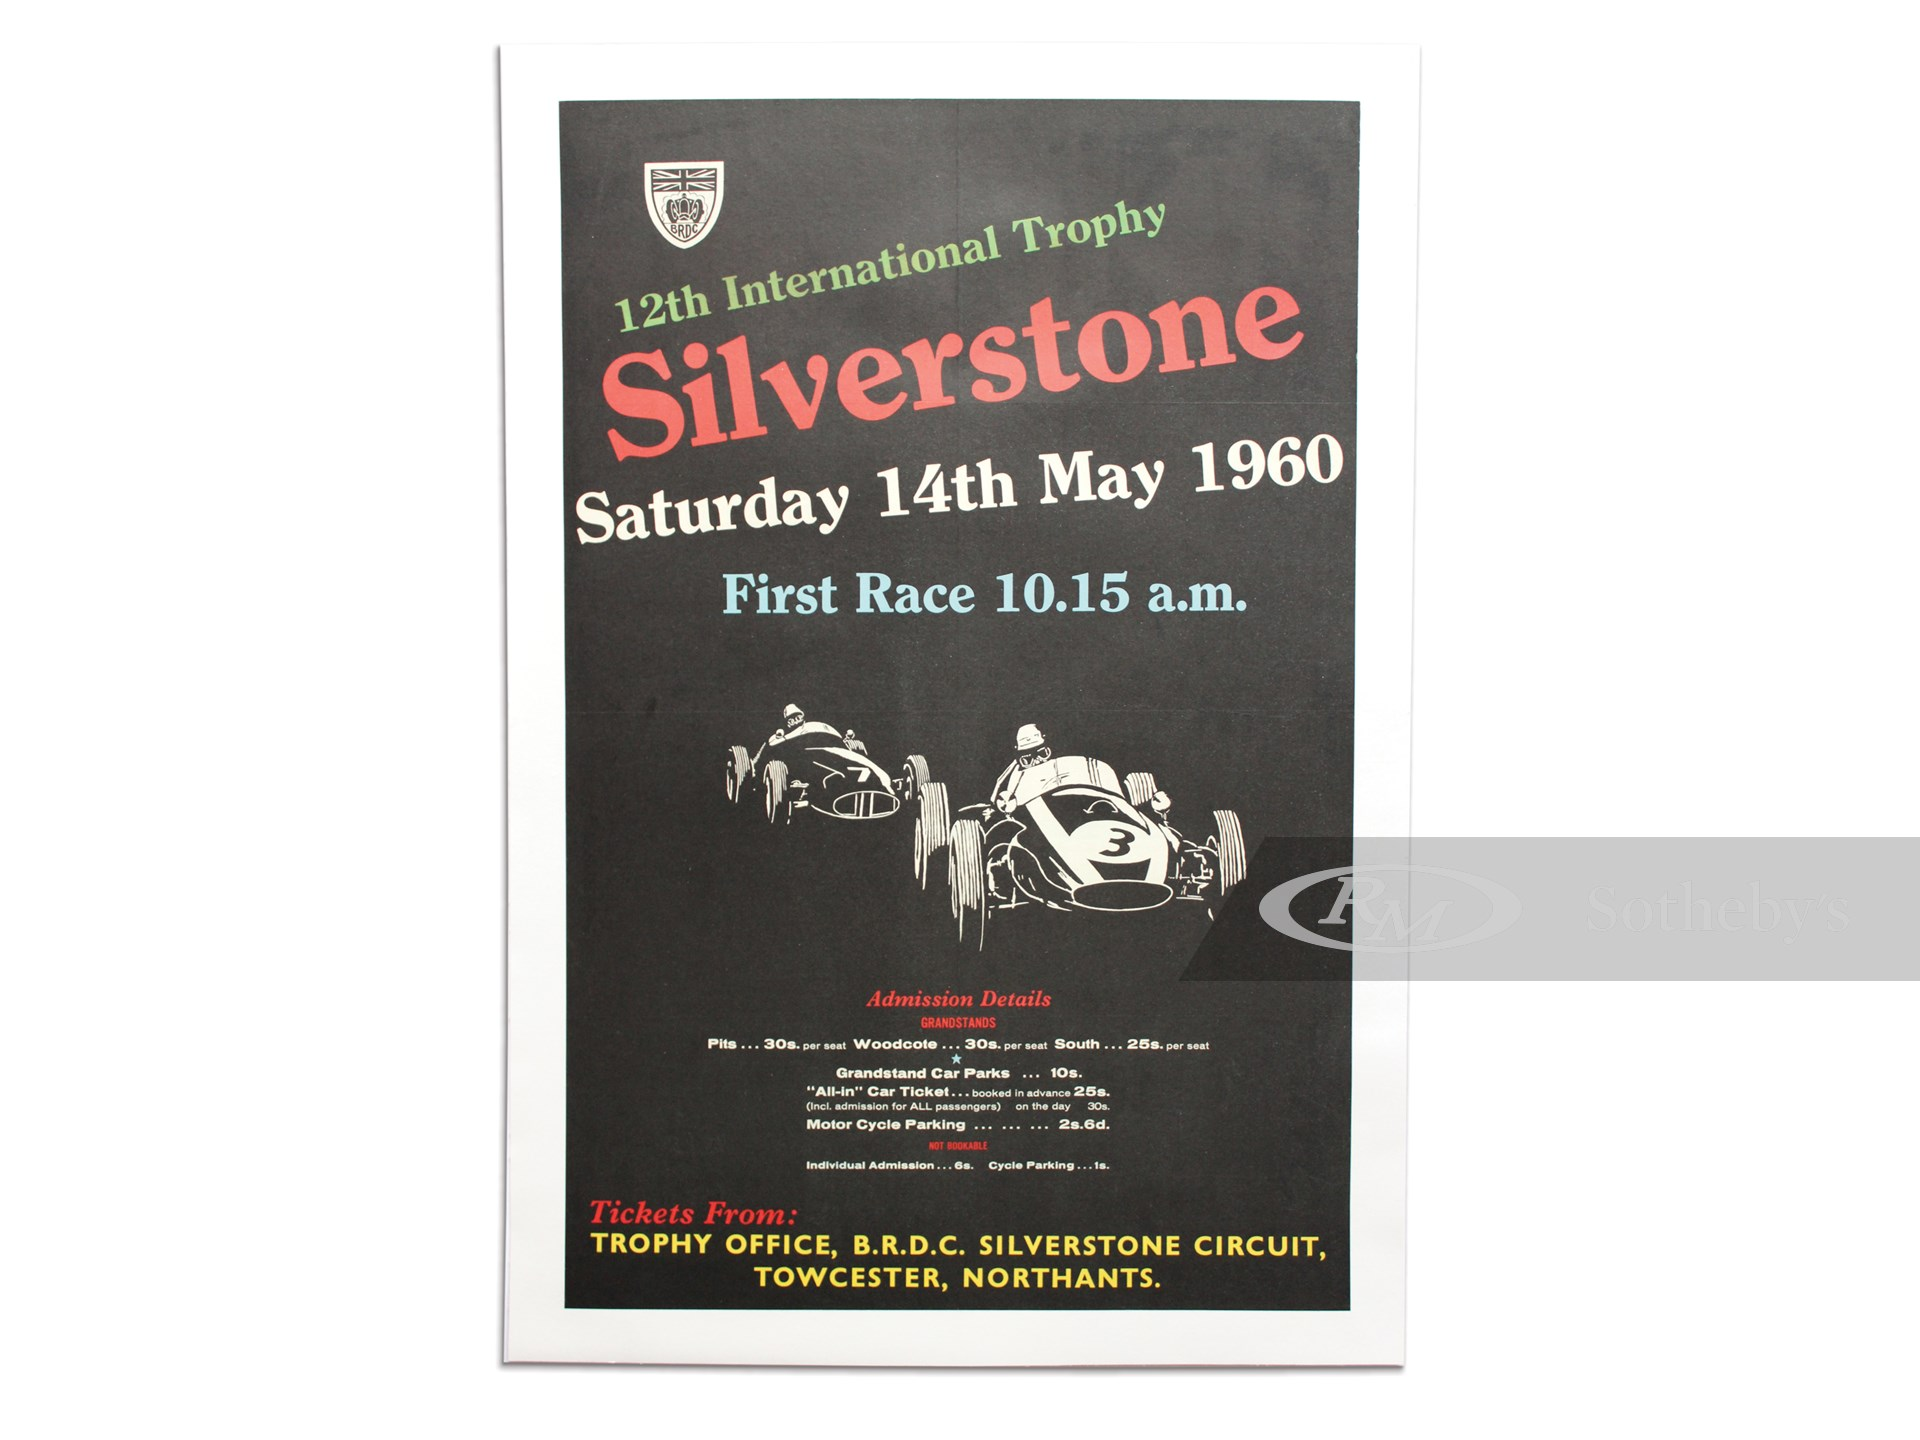 """""""12th International Trophy Silverstone Saturday 14th May 1960"""" British Racing Drivers Club Event Poster -"""